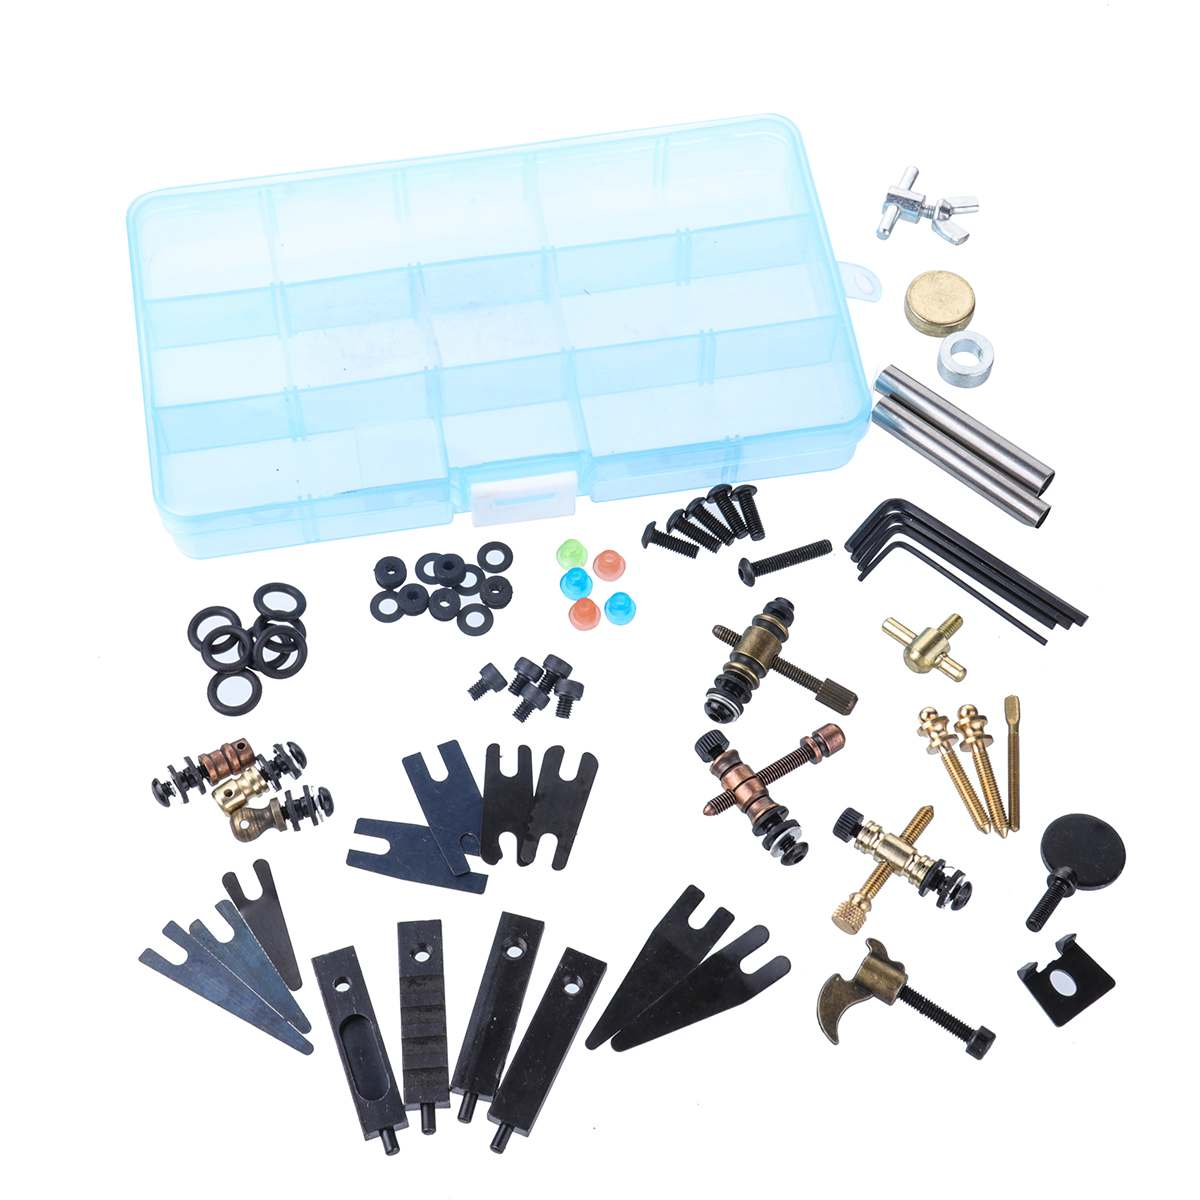 DIY Tattoo Accessories Parts Screws Kit Tattoo Guns Machine Repair Tools Maintenance Tools Set Assortment Storage Box Supplies